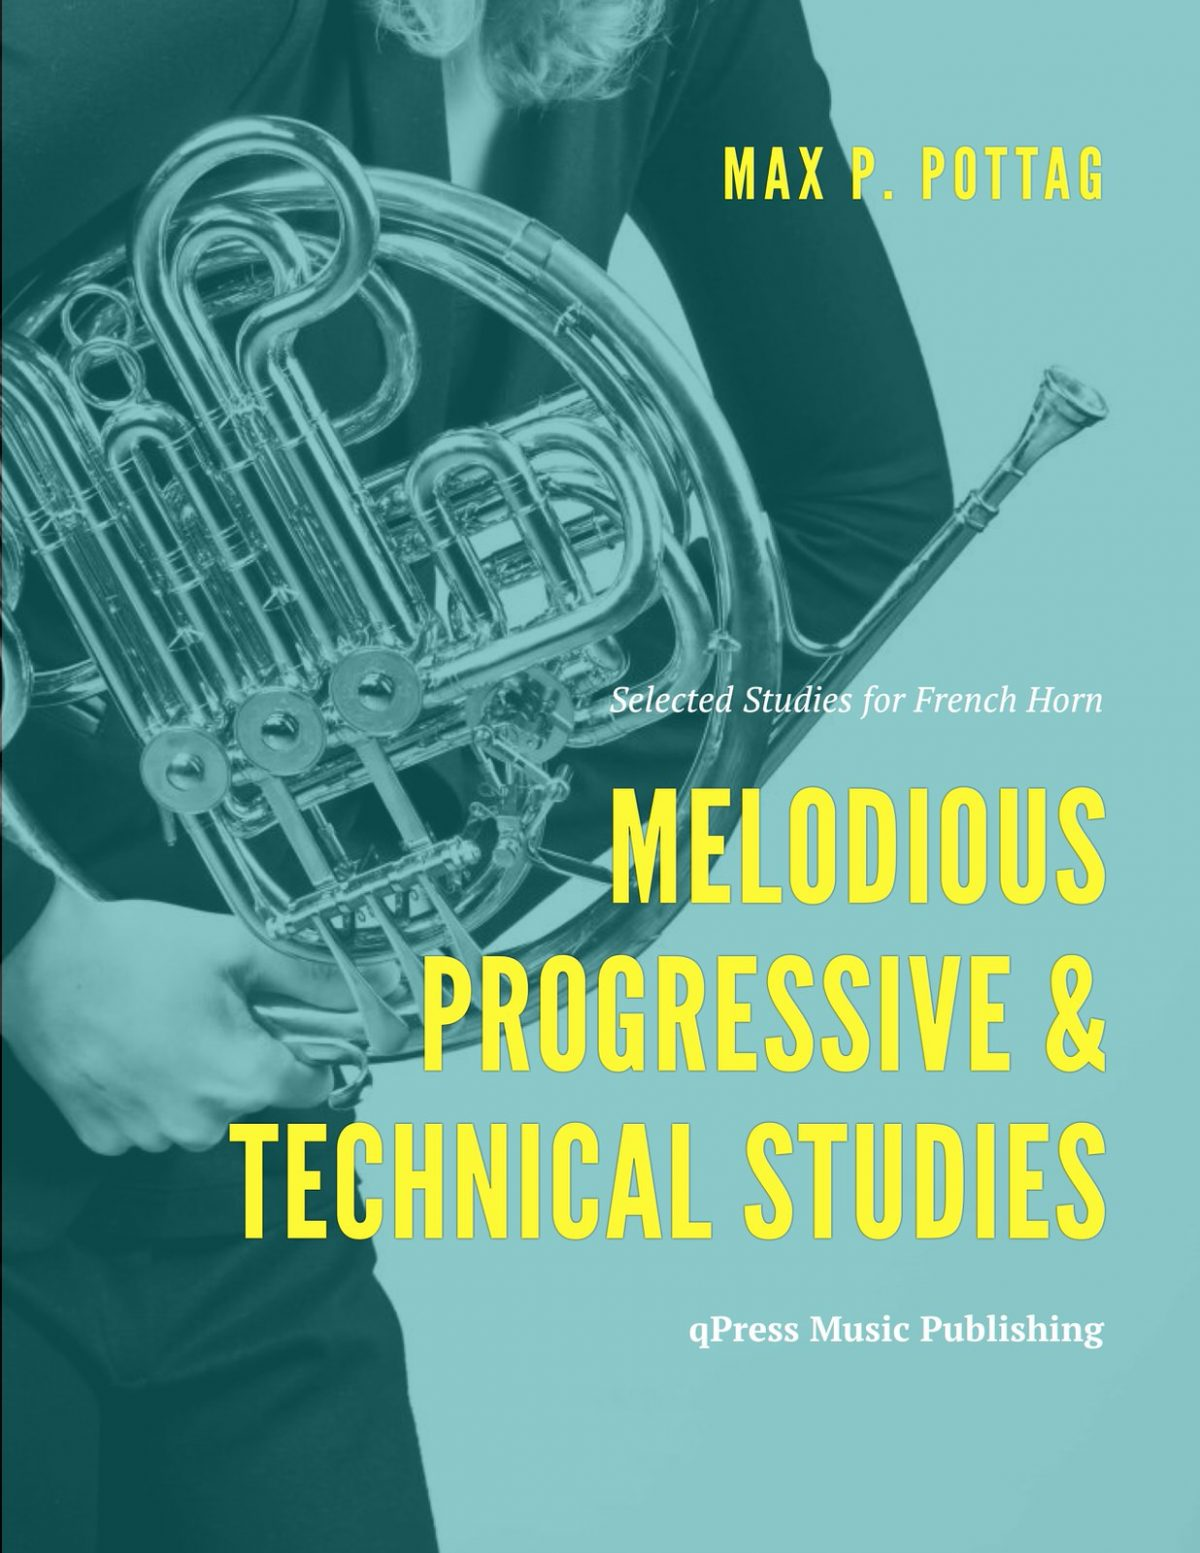 Selected Melodious Progressive and Technical Studies for French Horn